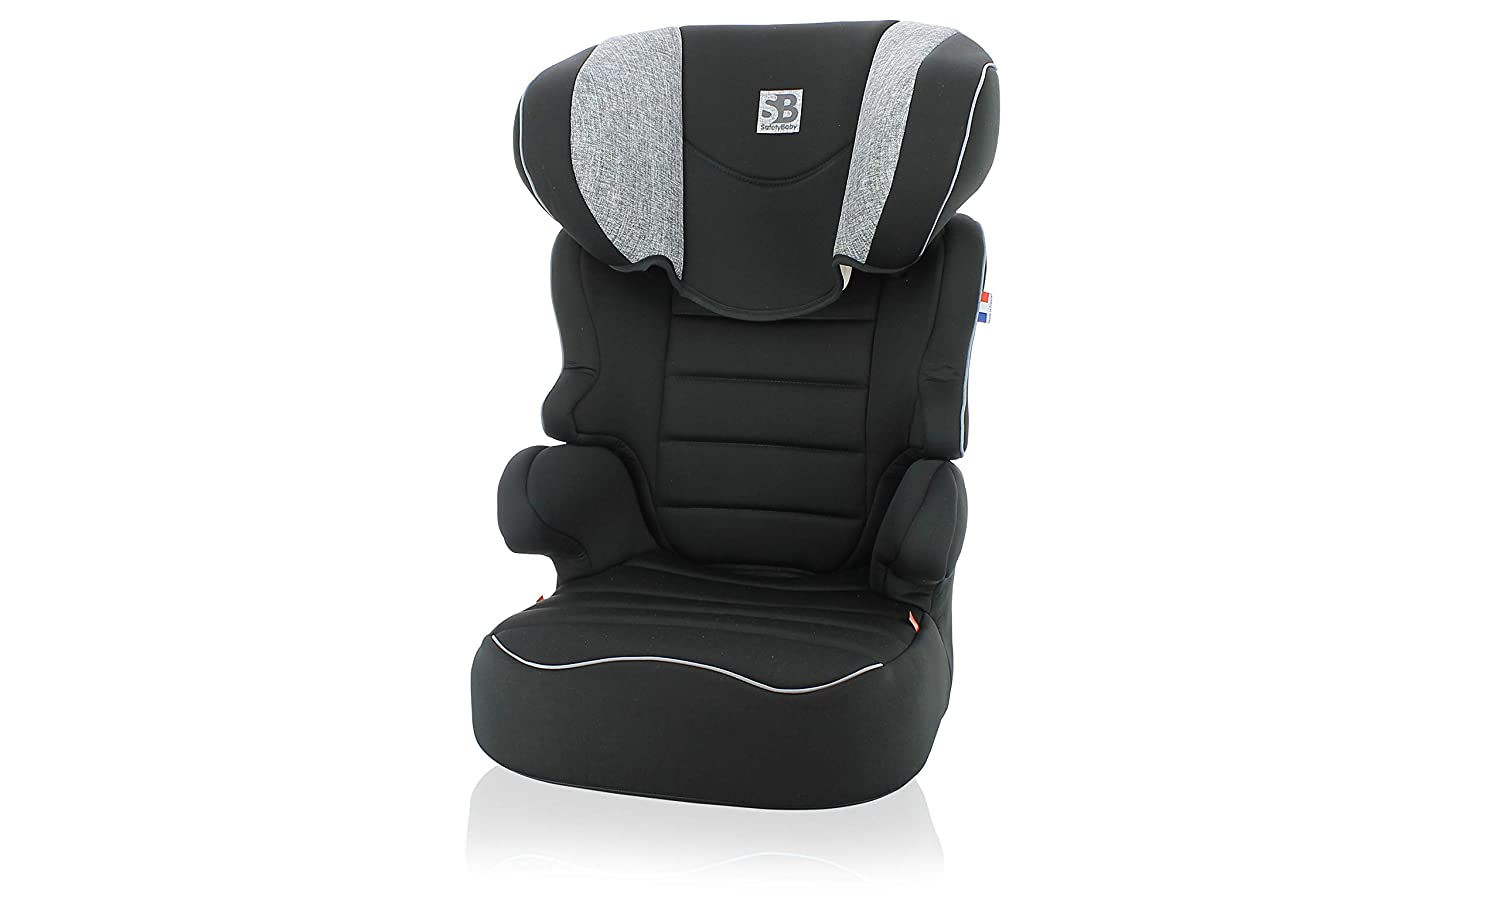 15-36 kg 15-36 kg -Befix Child Booster Seat Group 2//3 NANI Befix highback Booster Seat Group 2//3 - Awarded 4 Star ADAC Test